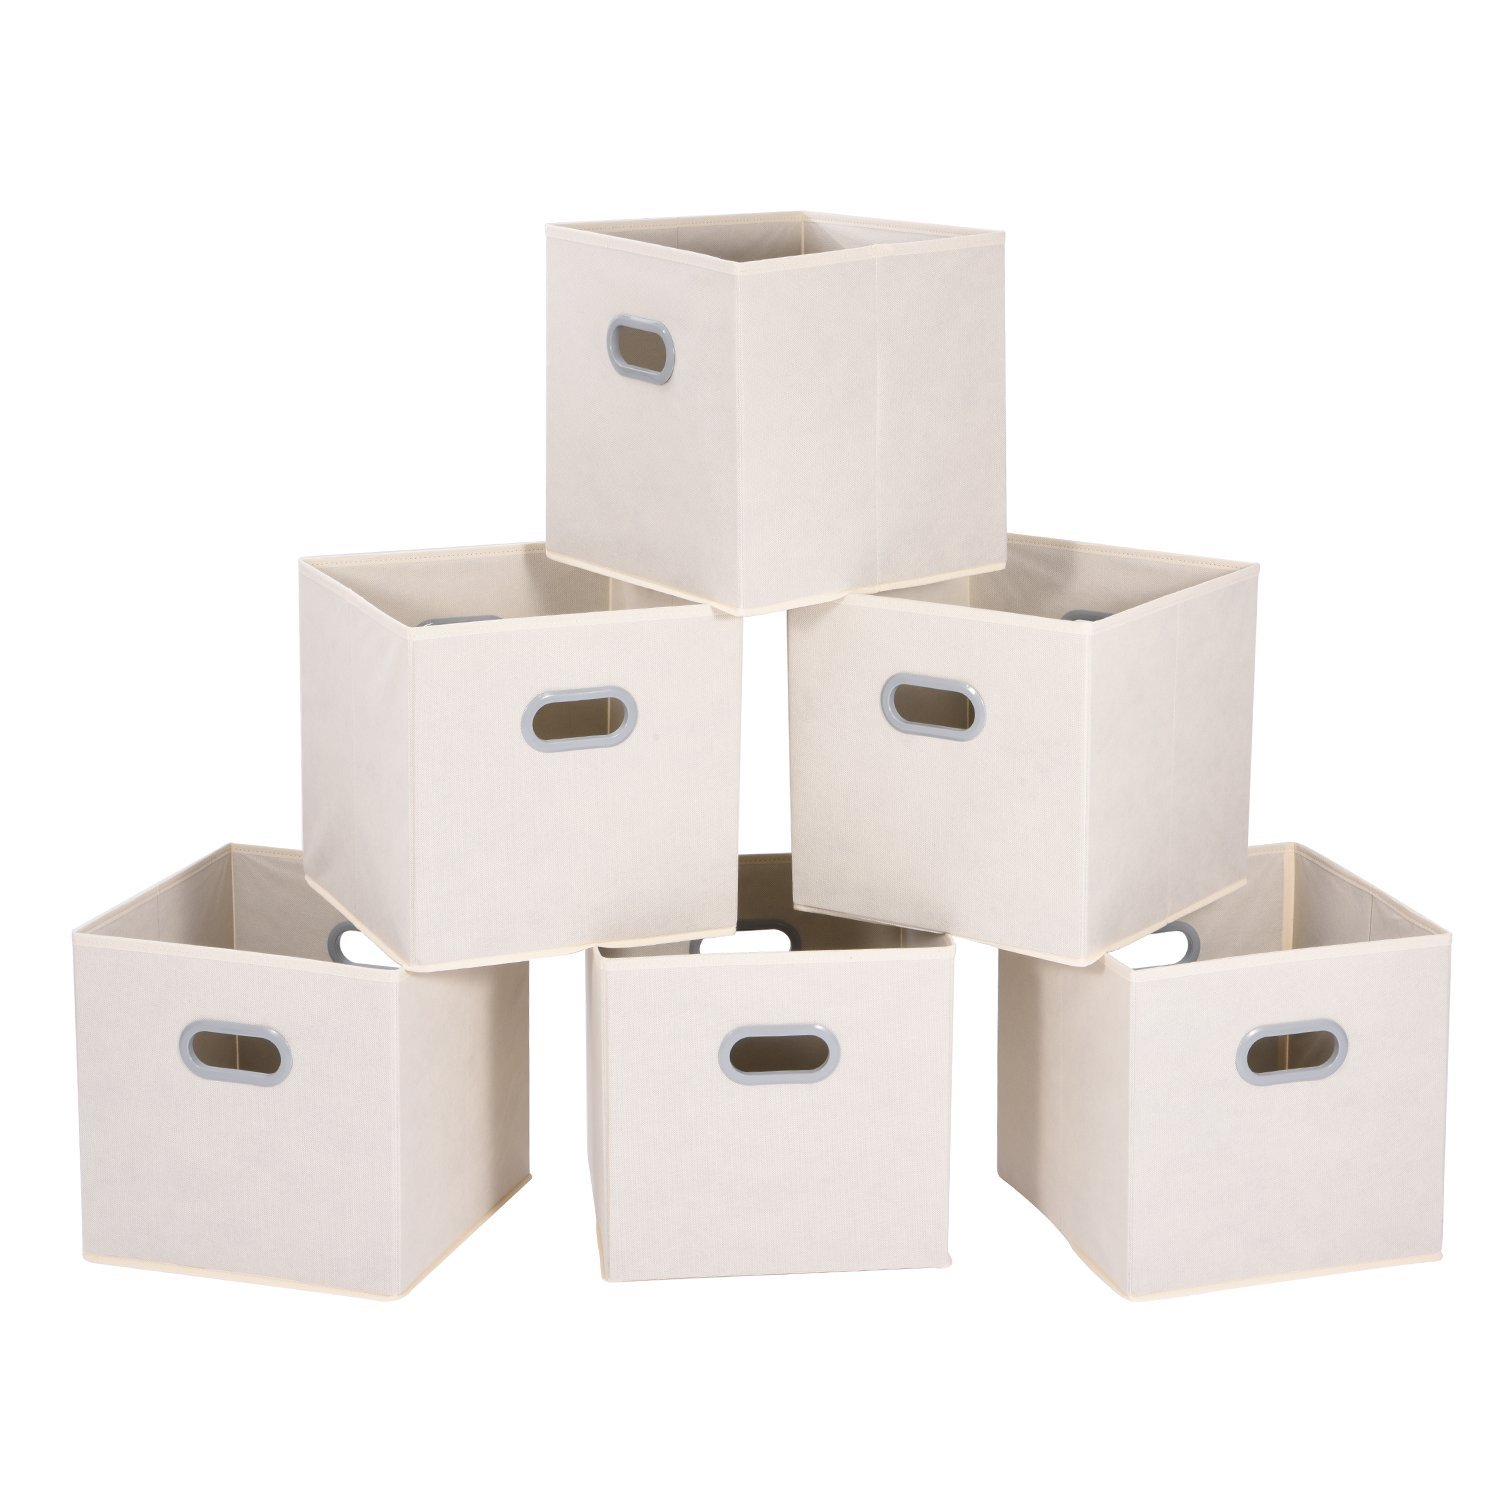 Amazon: Set Of 6 MaidMAX Foldable Cloth Storage Cubes Bins $10.99 After  Coupon Code